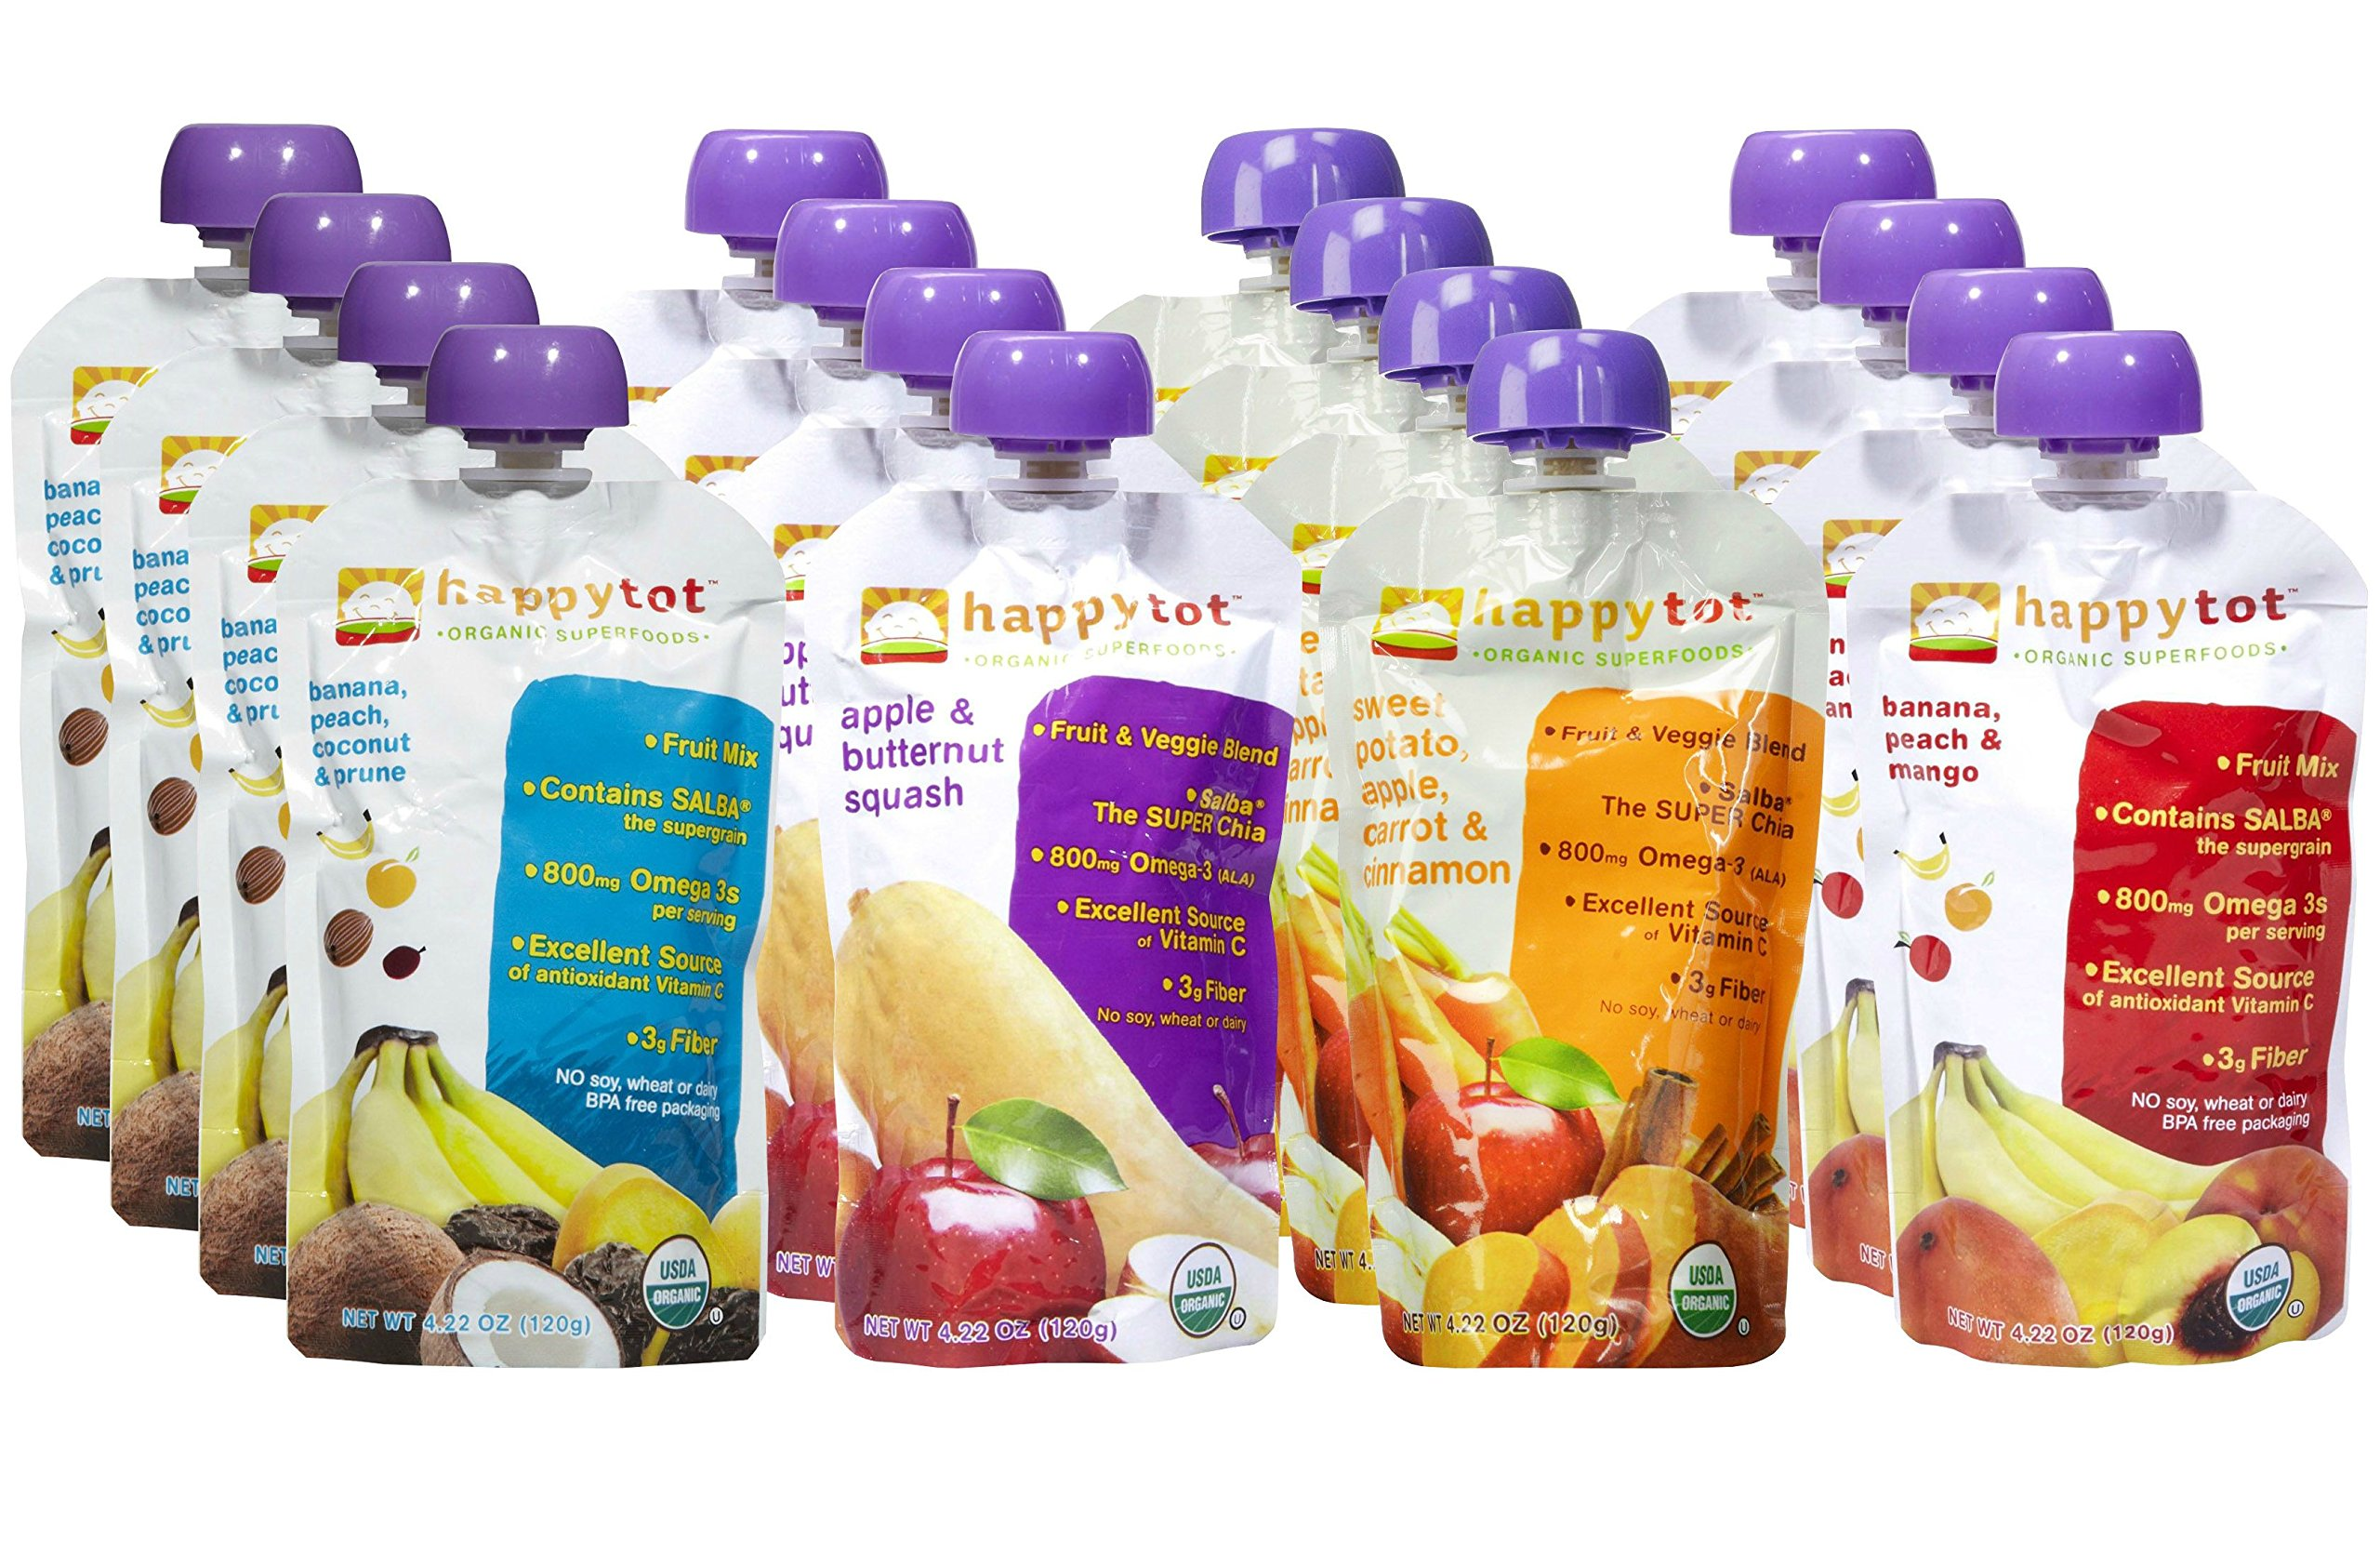 Happy Tot Organic Superfoods Stage 4, 4.22 OZ Baby Food Pouches Variety Pack of 16 (Banana Peach Prunes Coconut, Apple and Butternut Squash, Sweet Potato Apple Carrots Cinnamon, and Banana Mango & Peach) by HAPPYBABY